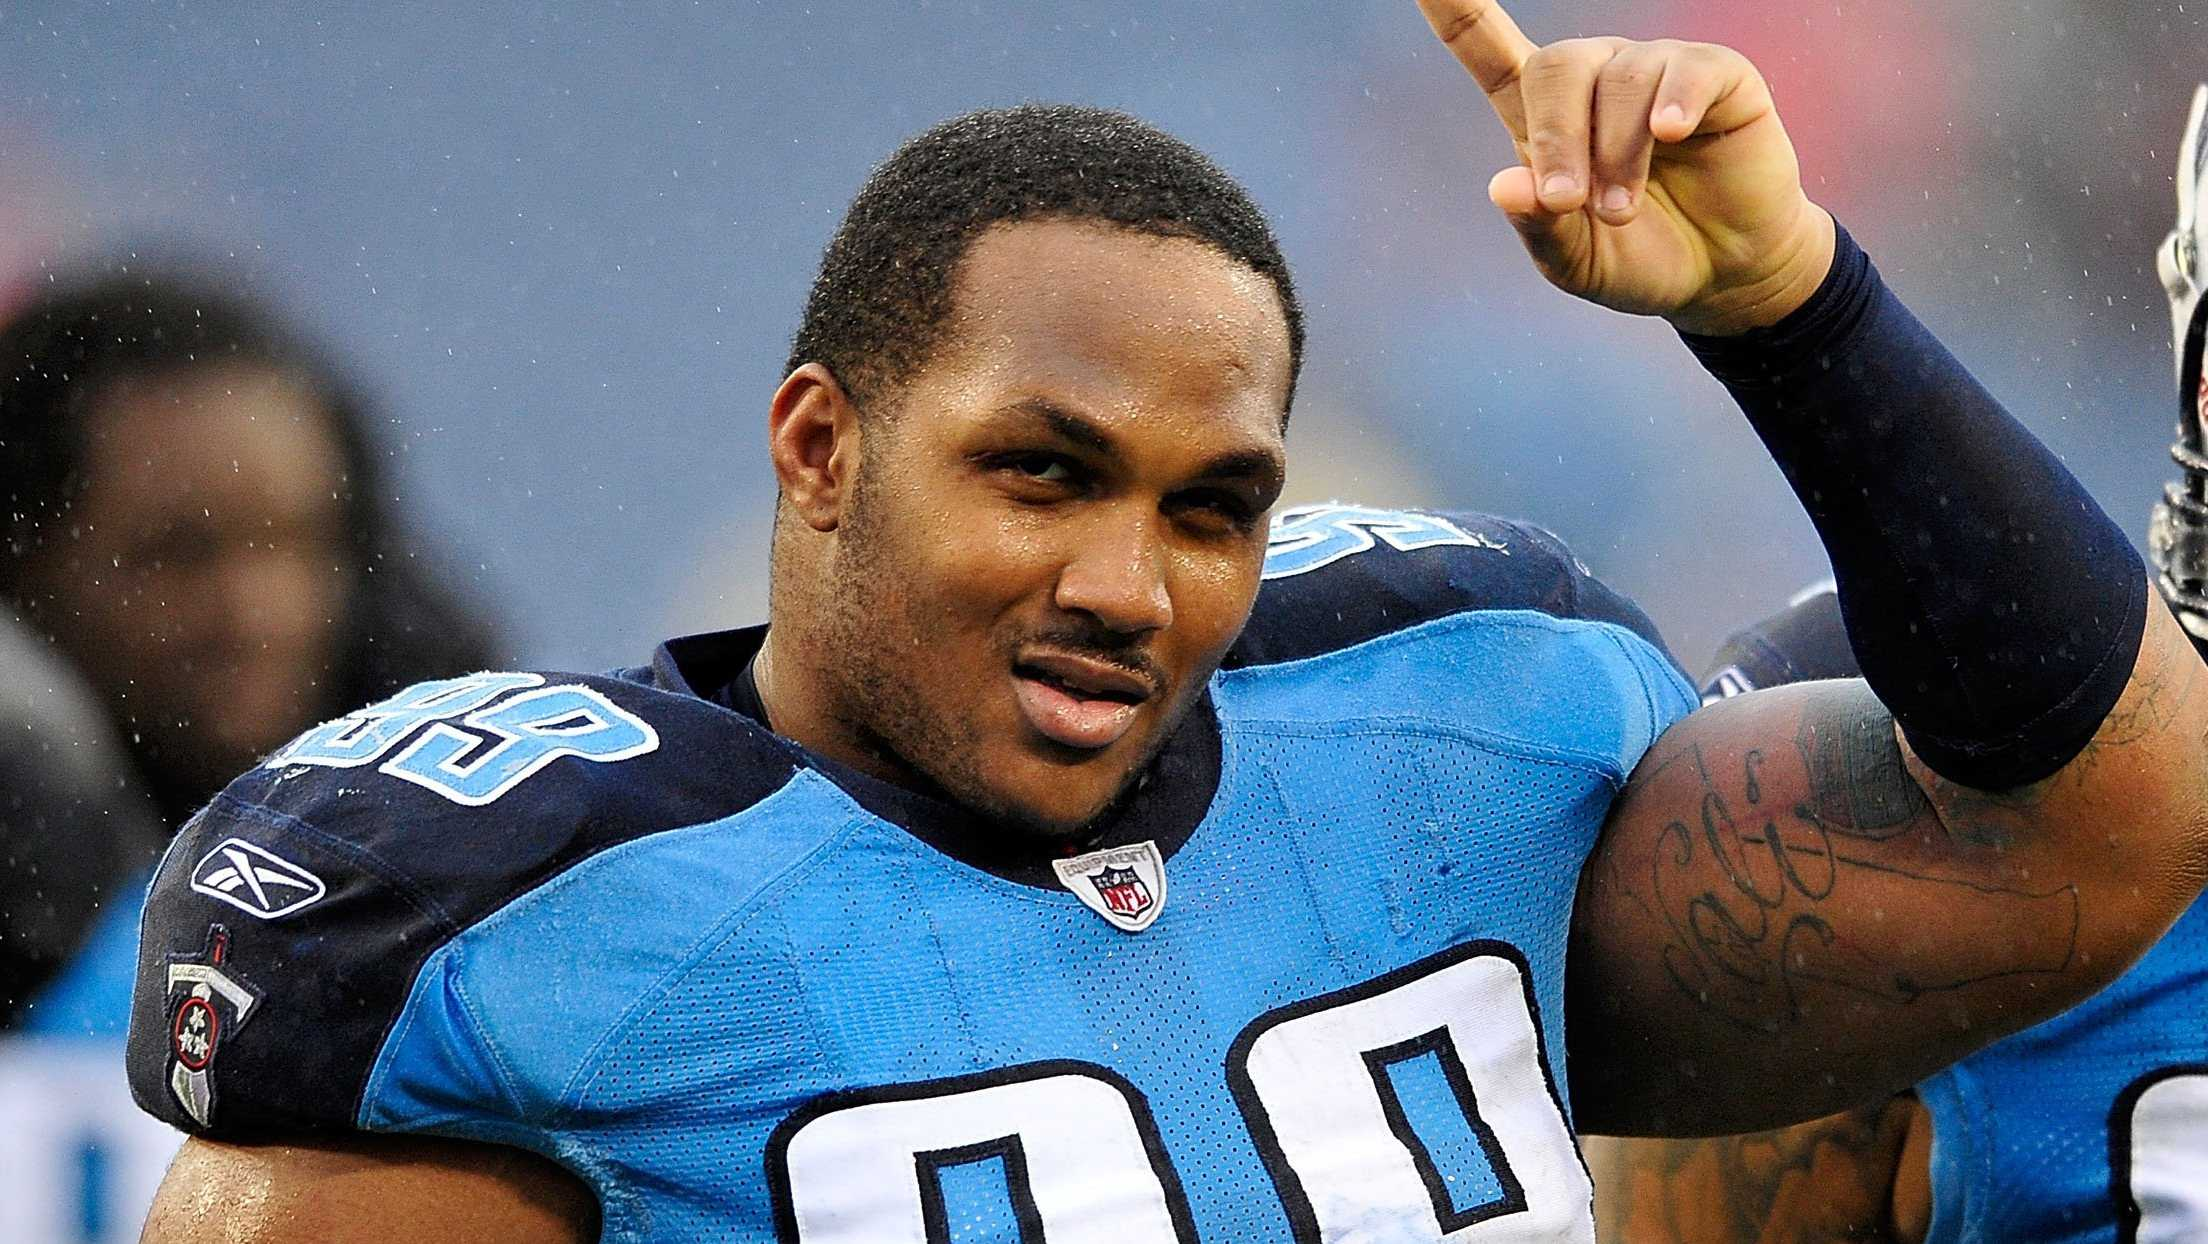 Tennessee Titans defensive tackle Jurrell Casey